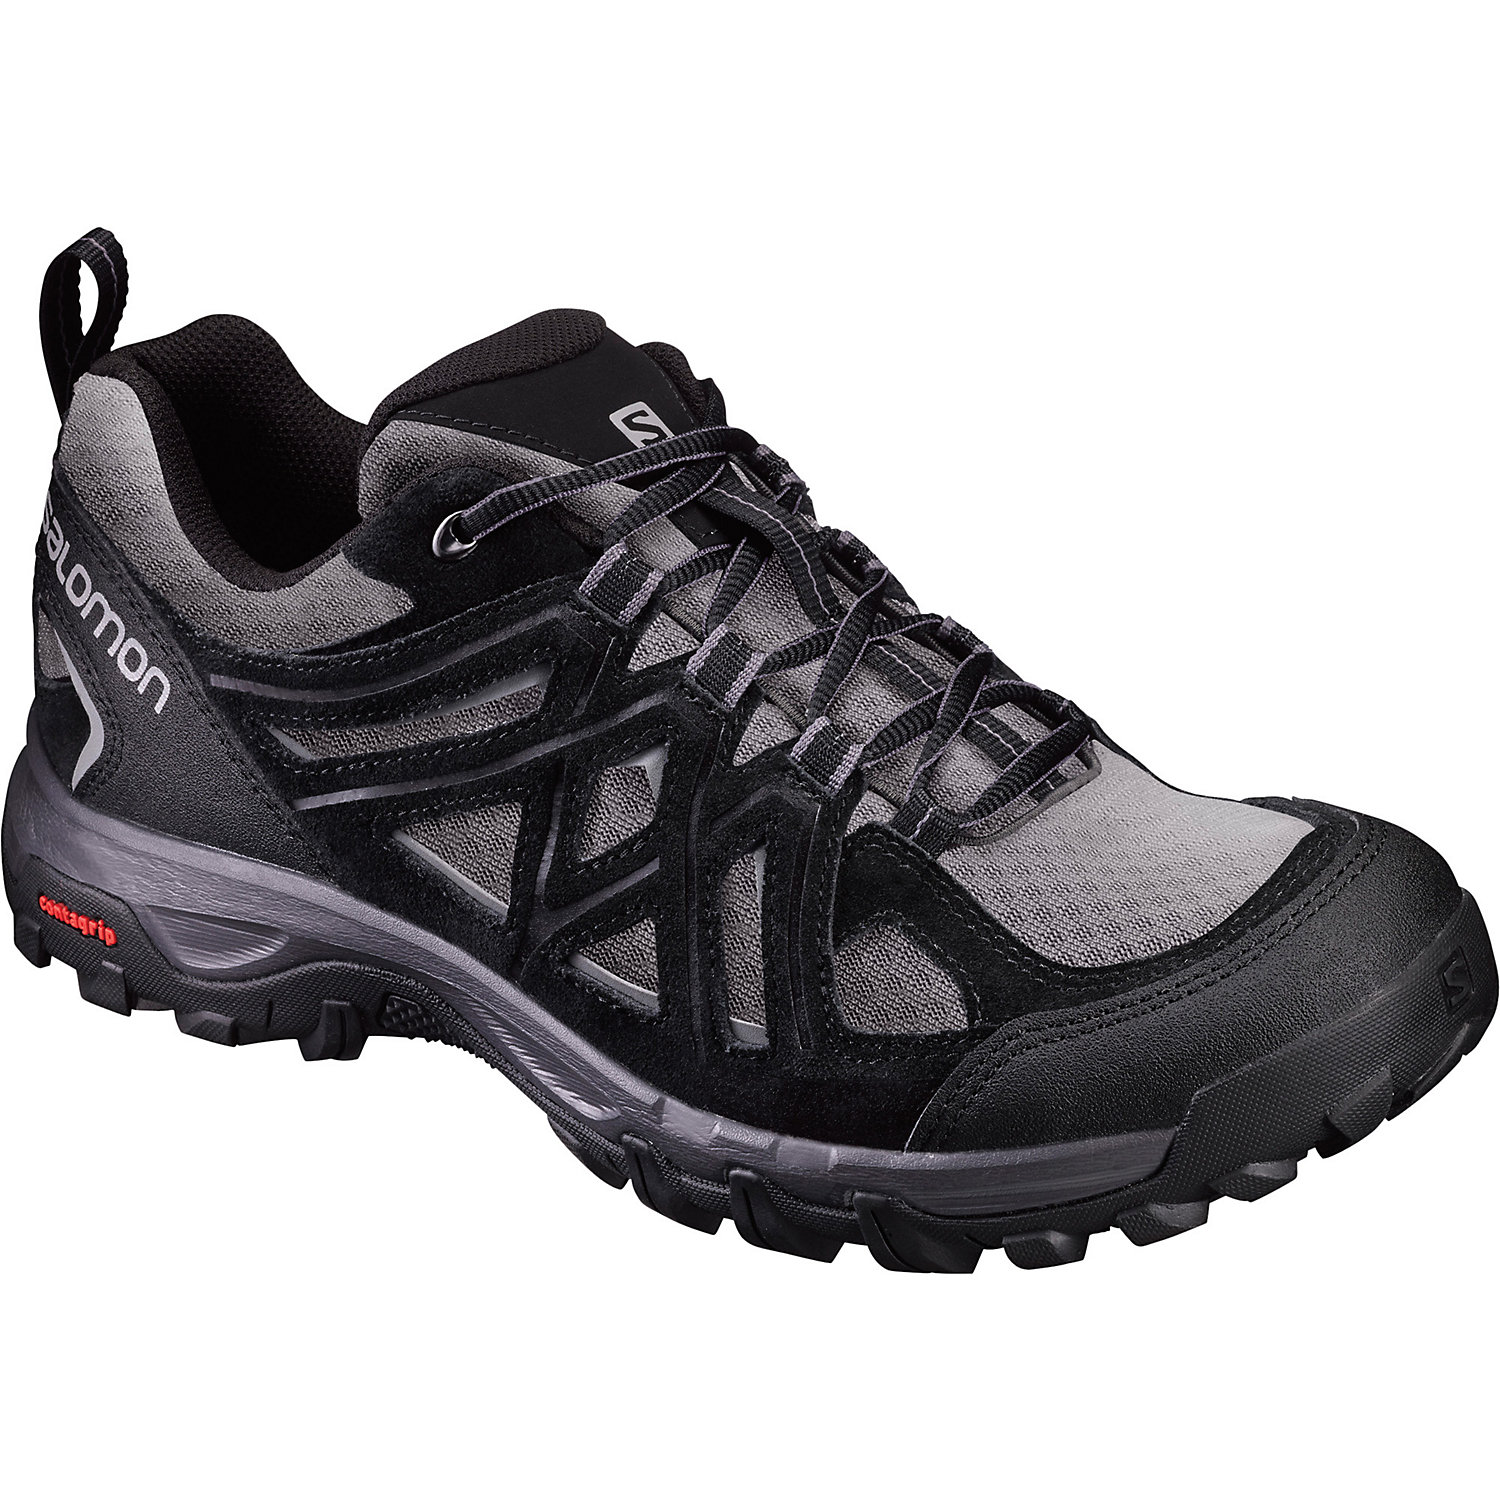 eda20a413eb Salomon Men's Evasion 2 Aero Shoe